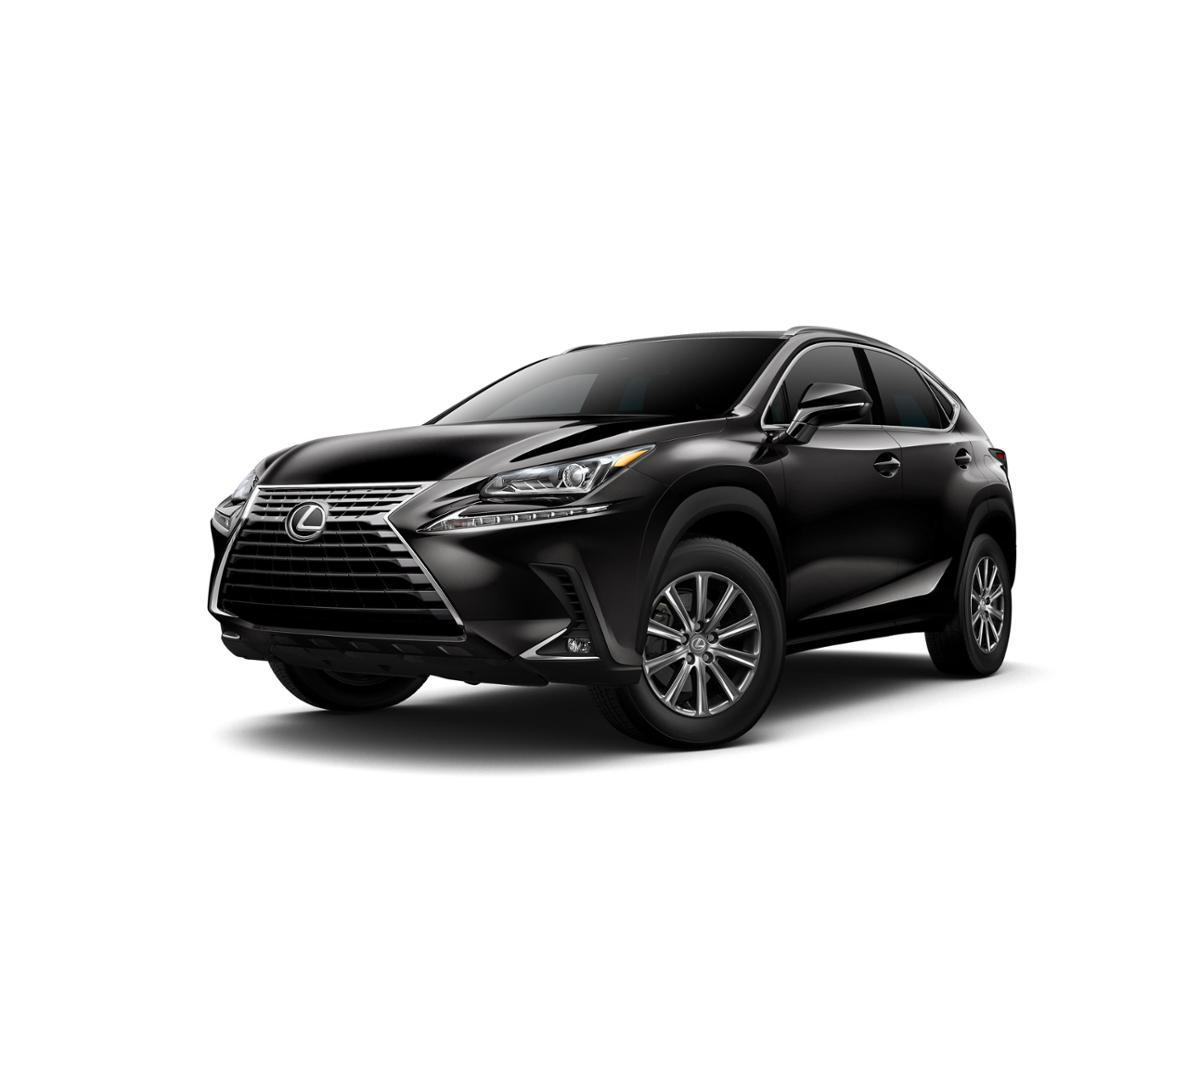 2019 Lexus NX 300 Vehicle Photo in Sacramento, CA 95821